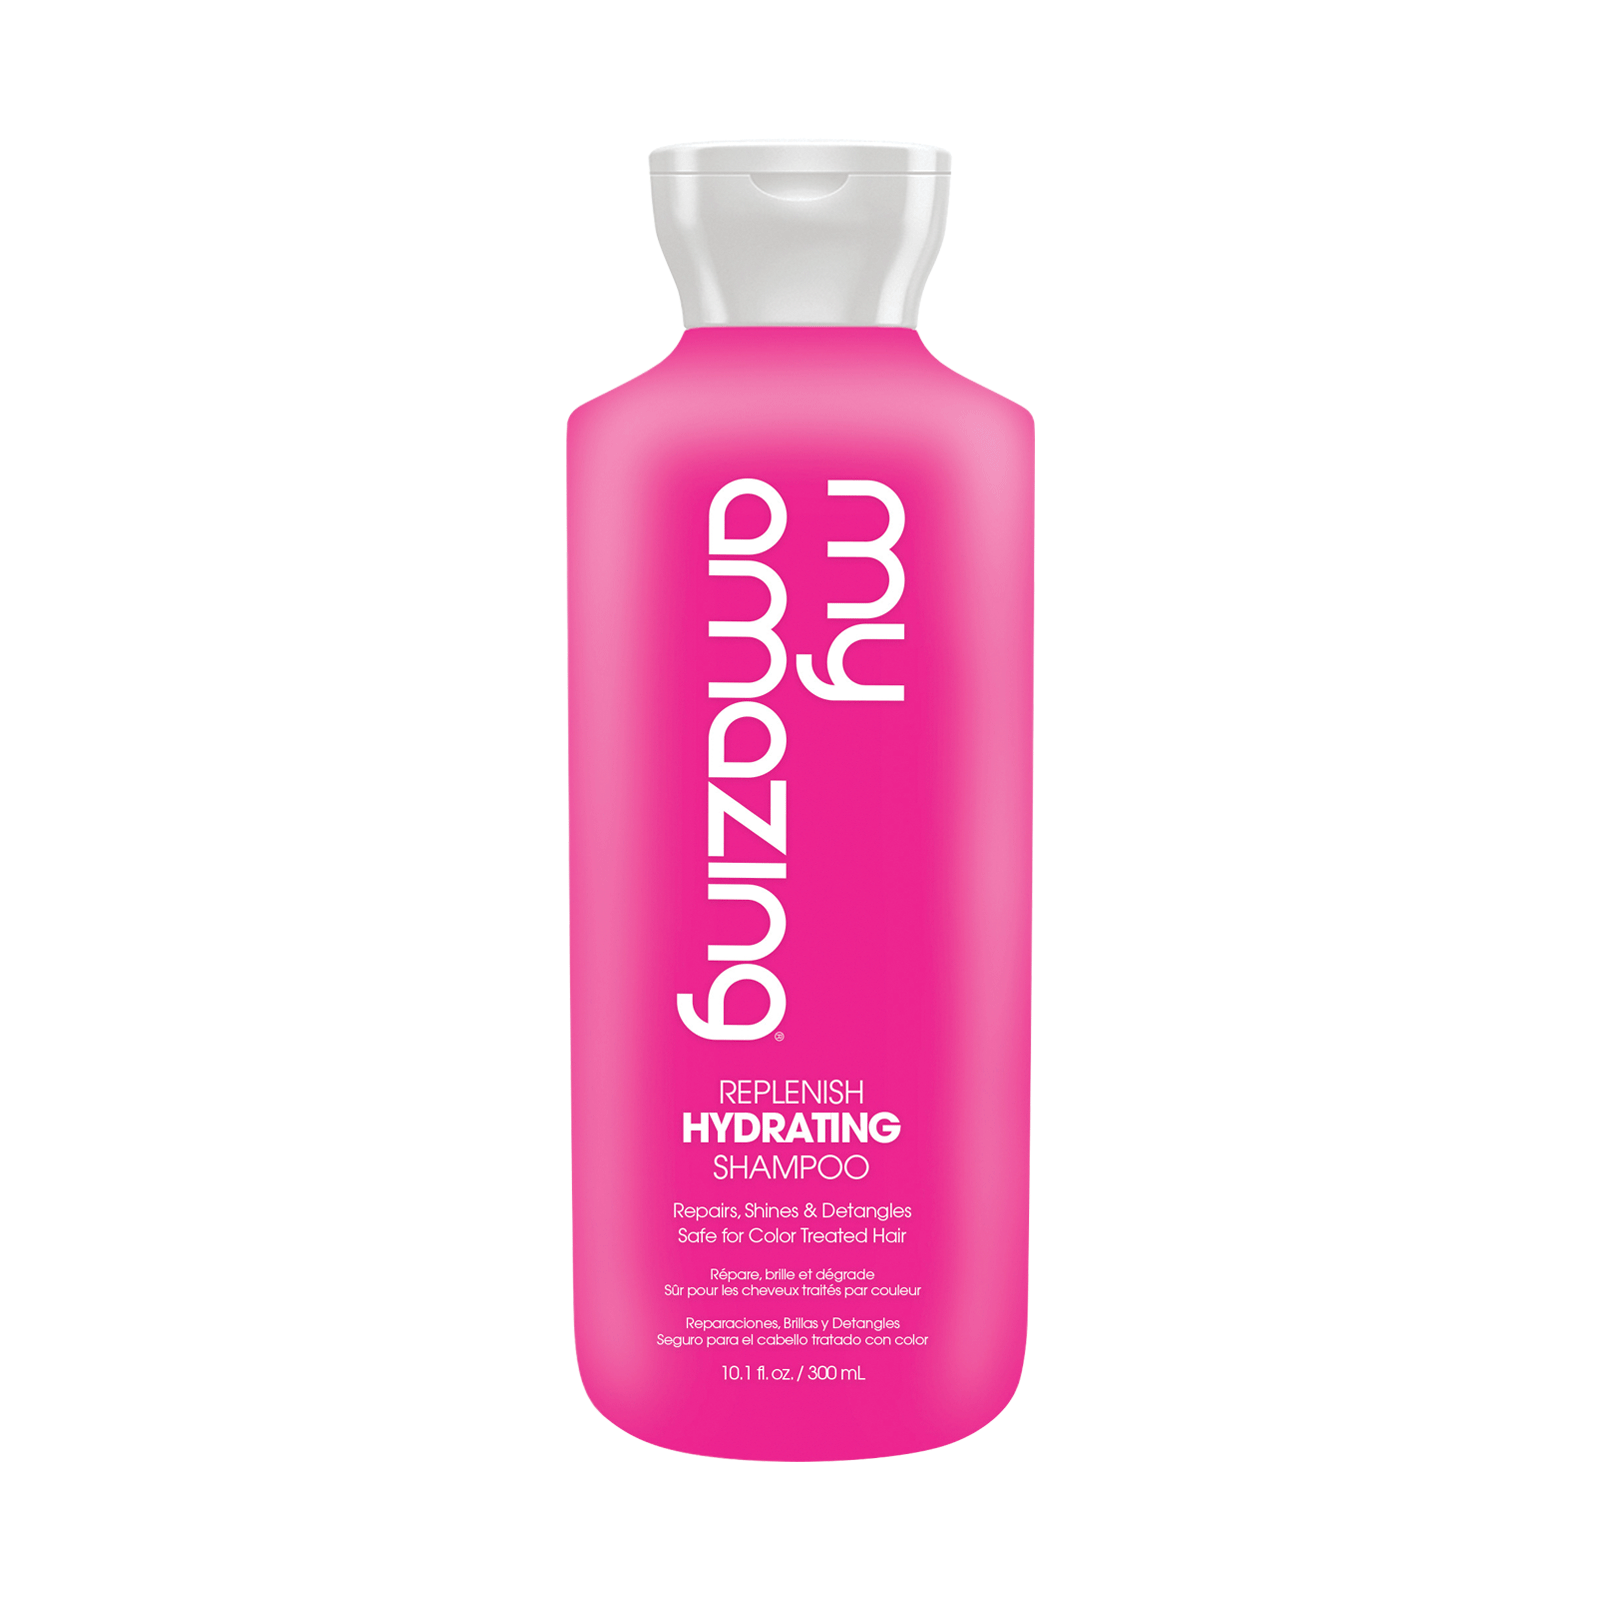 Replenish Hydrating Shampoo